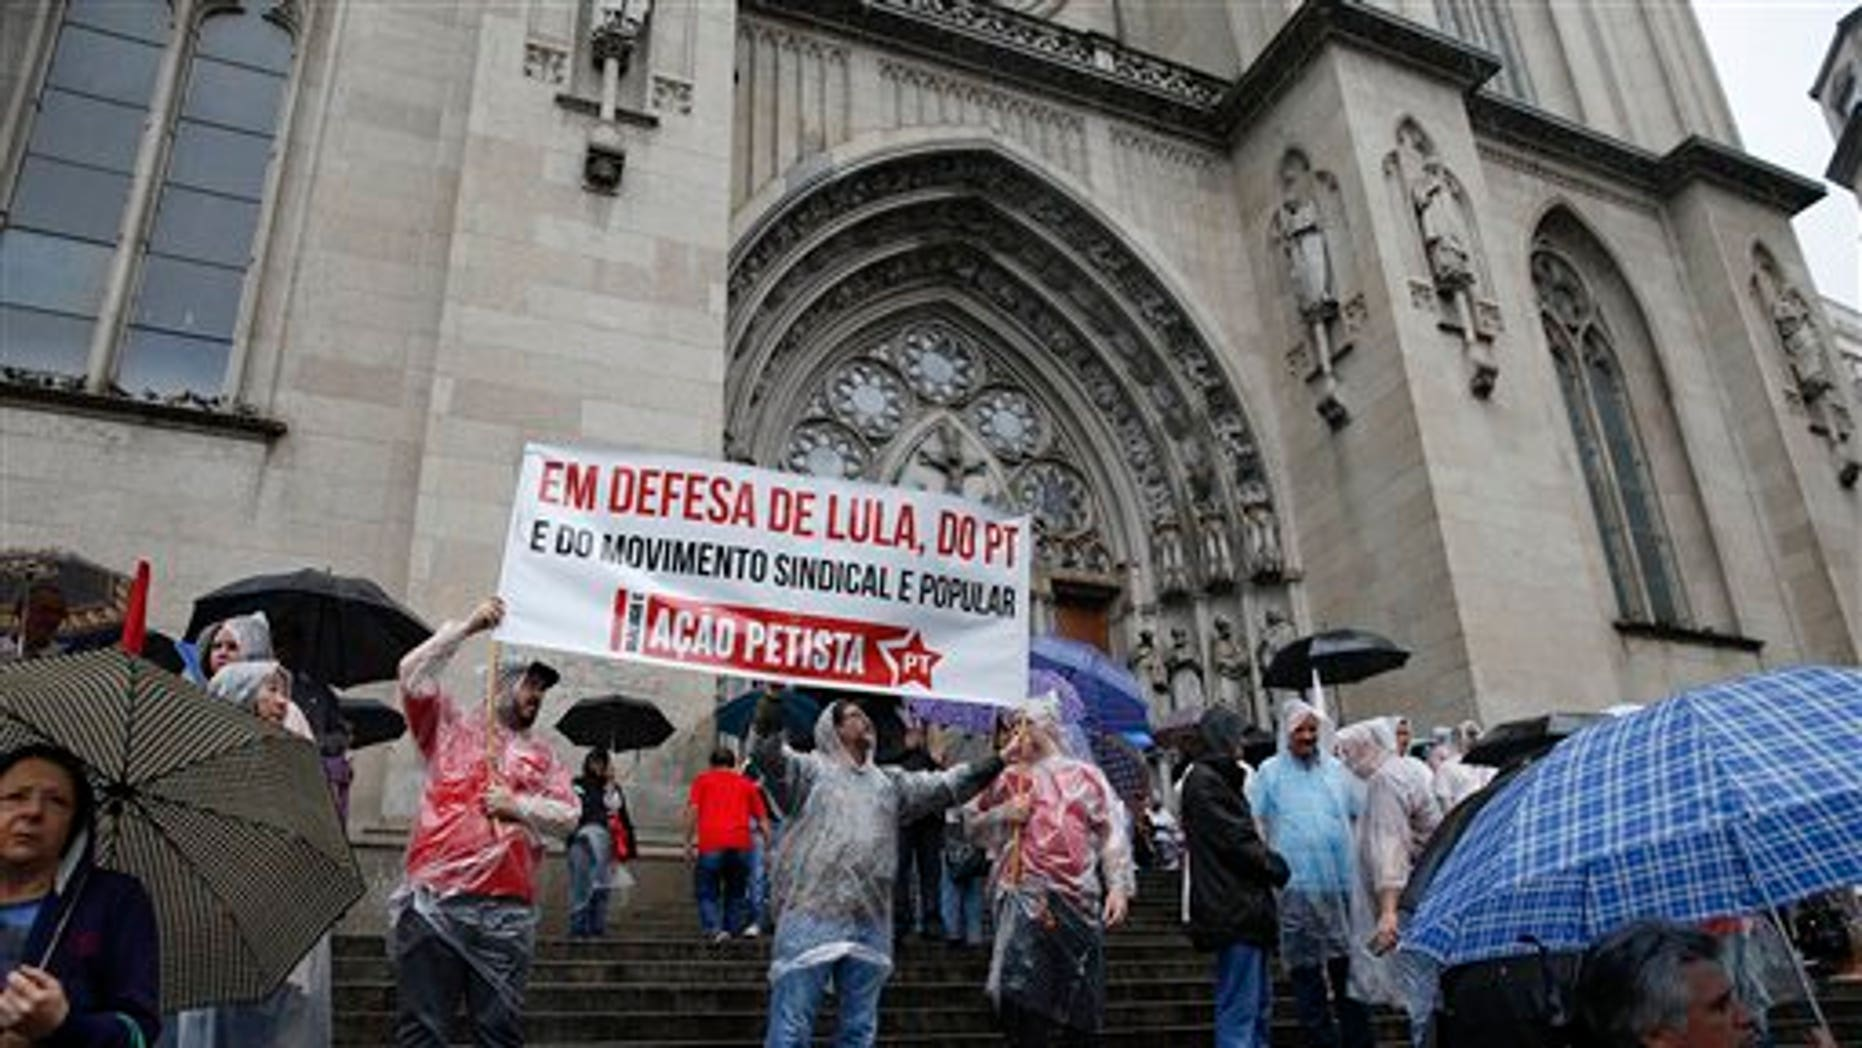 Demonstrators gather on the cathedral steps to show support for former Brazil's President Luiz Inacio Lula da Silva, in Sao Paulo, Brazil, Friday, March 11, 2016.  Sao Paulo state prosecutors said Thursday they filed money laundering and criminal misrepresentation charges against the former leader because of evidence he and his family unduly benefited from a real estate scheme that adversely affected thousands of Brazilian families. (AP Photo/Andre Penner)